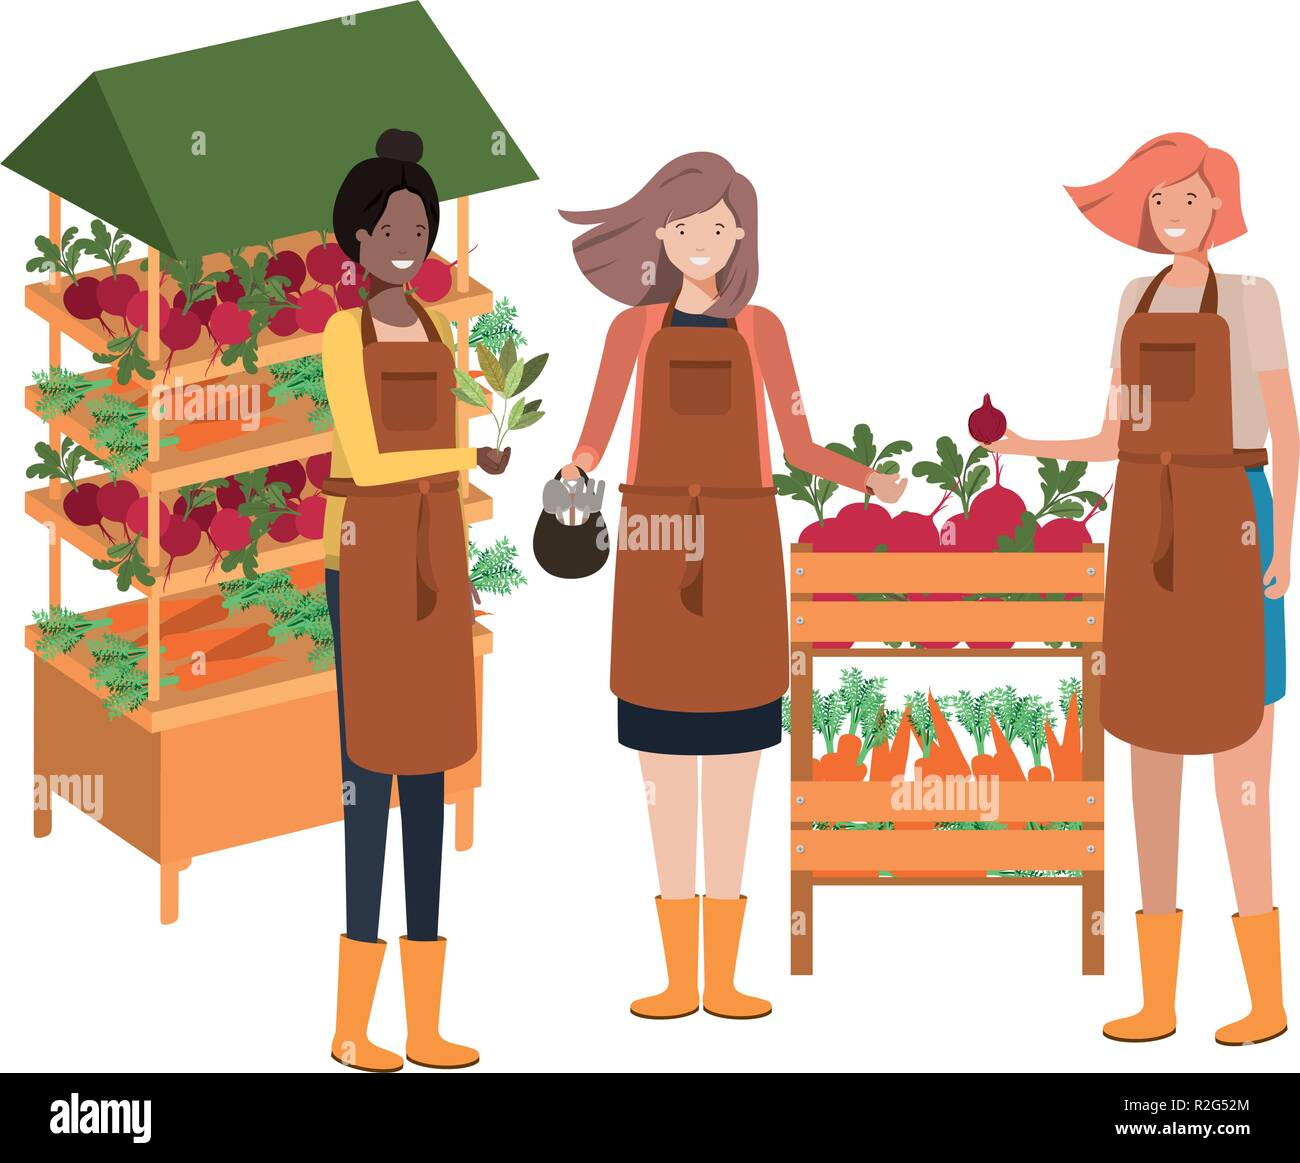 grup of people with kiosk avatar character - Stock Vector